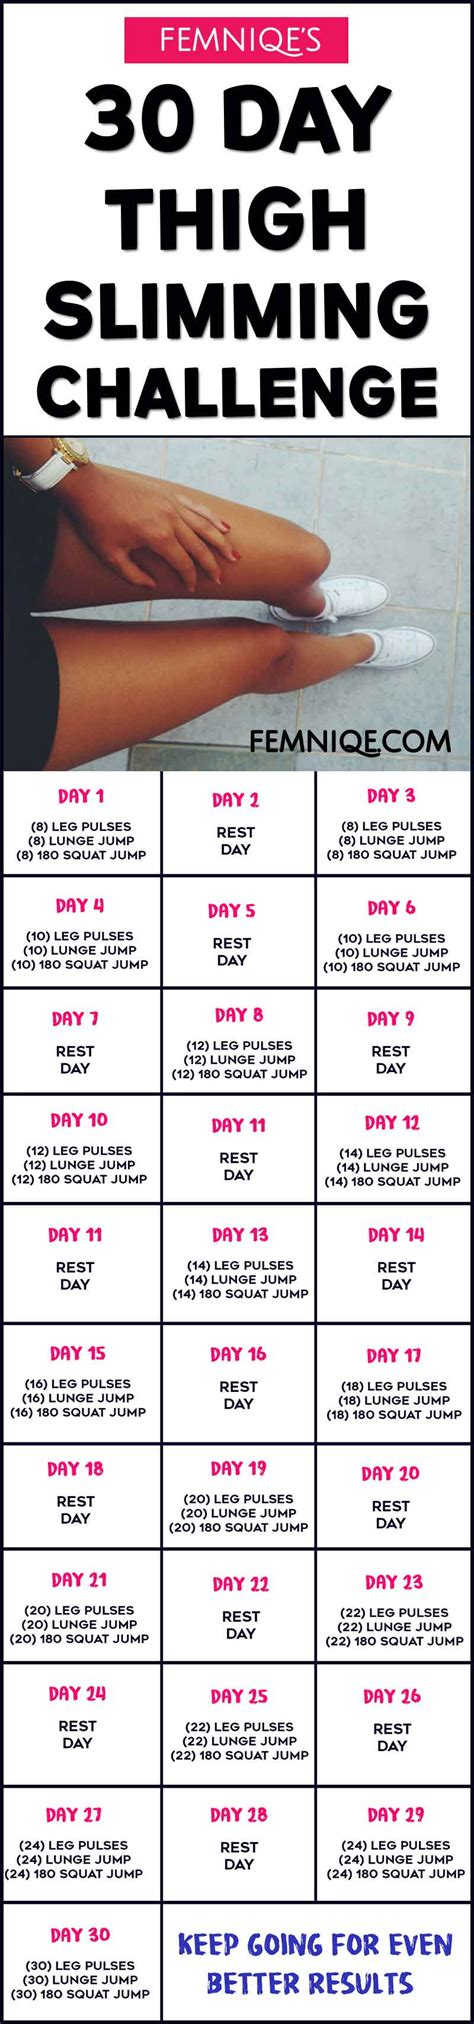 30 day challenge exercise 30 day thigh slimming challenge meal plan inside femniqe